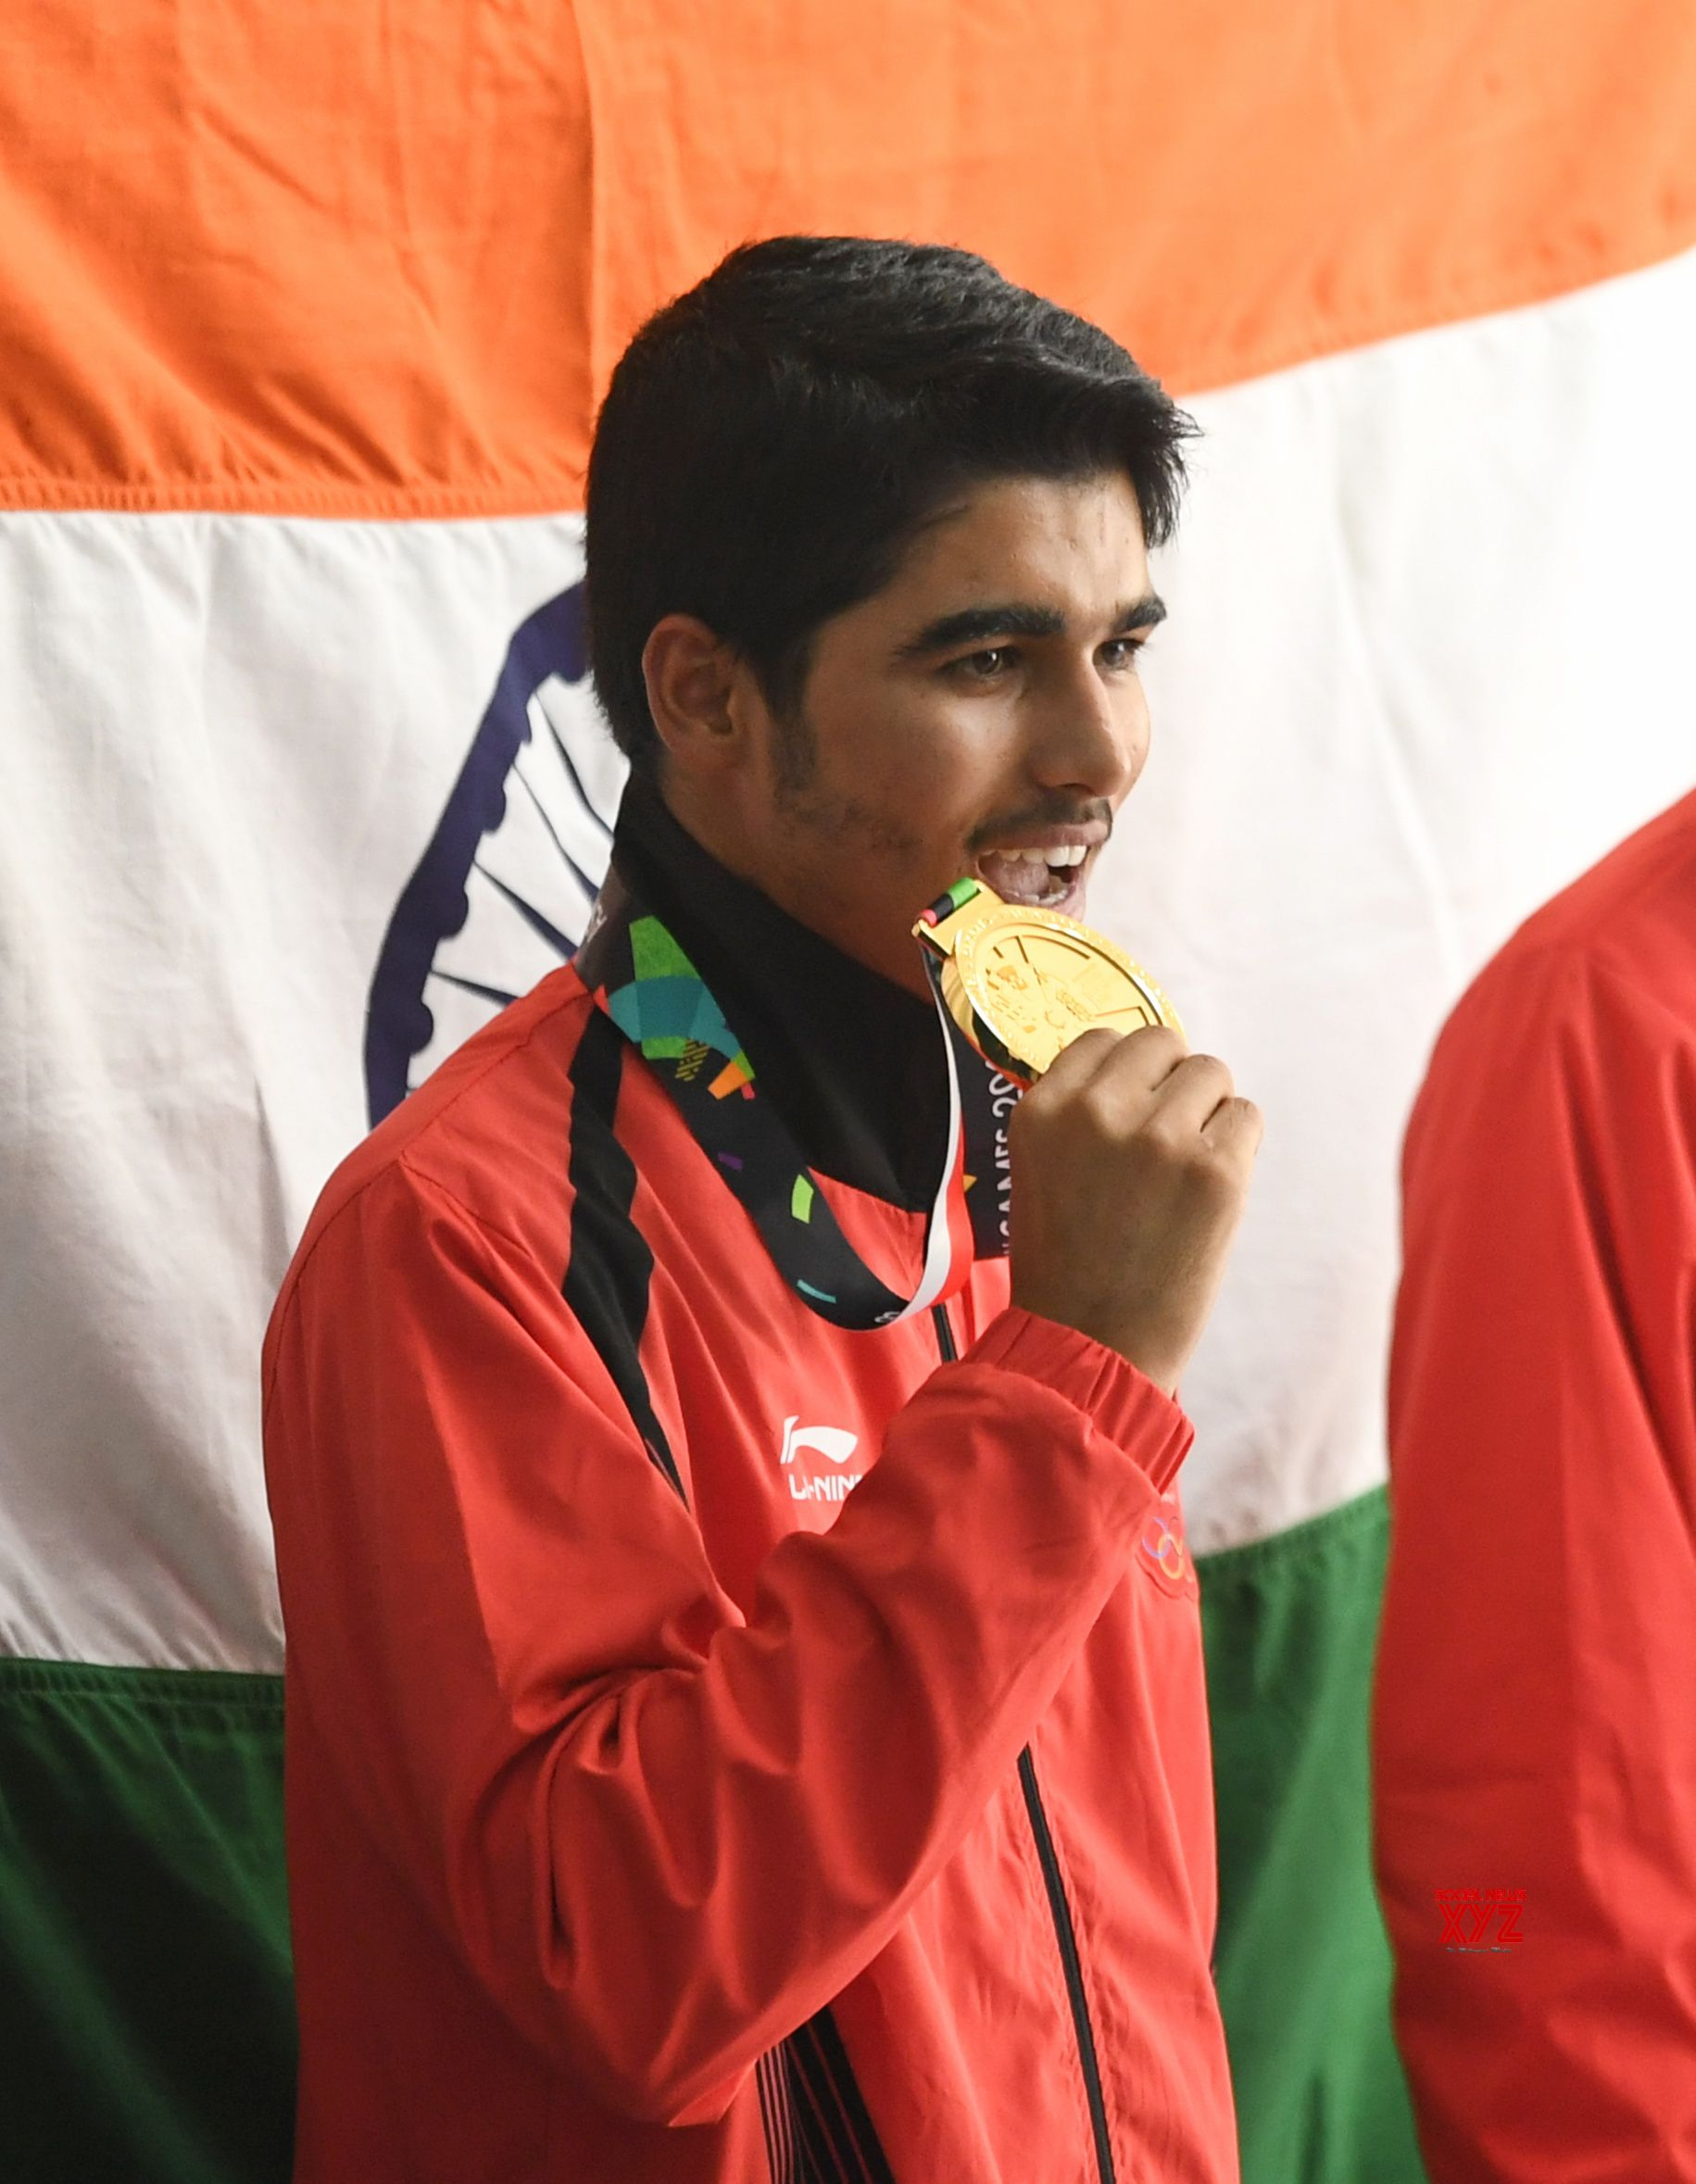 (180821) -- PALEMBANG, Aug. 21, 2018 (Xinhua) -- Saurabh Chaudhary of India reacts during the awarding ceremony of the men's 10m Air Pistol final  at the 18th Asian Games in Palembang, Indonesia on Aug. 21, 2018. (Xinhua/Liu Ailun)